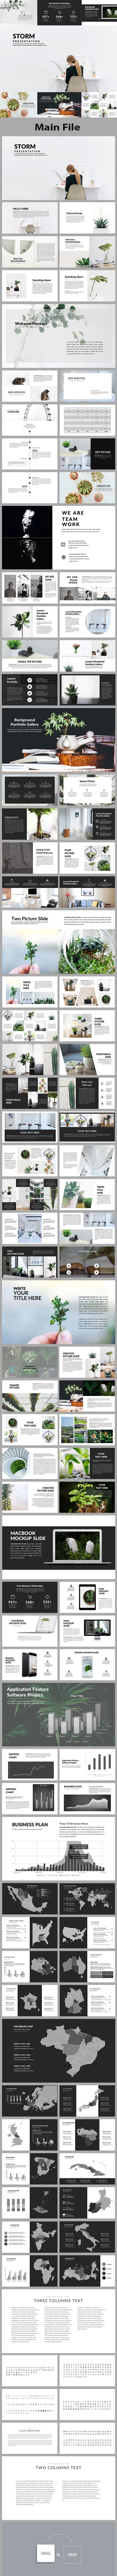 Storm - Creative PowerPoint Template - Creative PowerPoint Templates